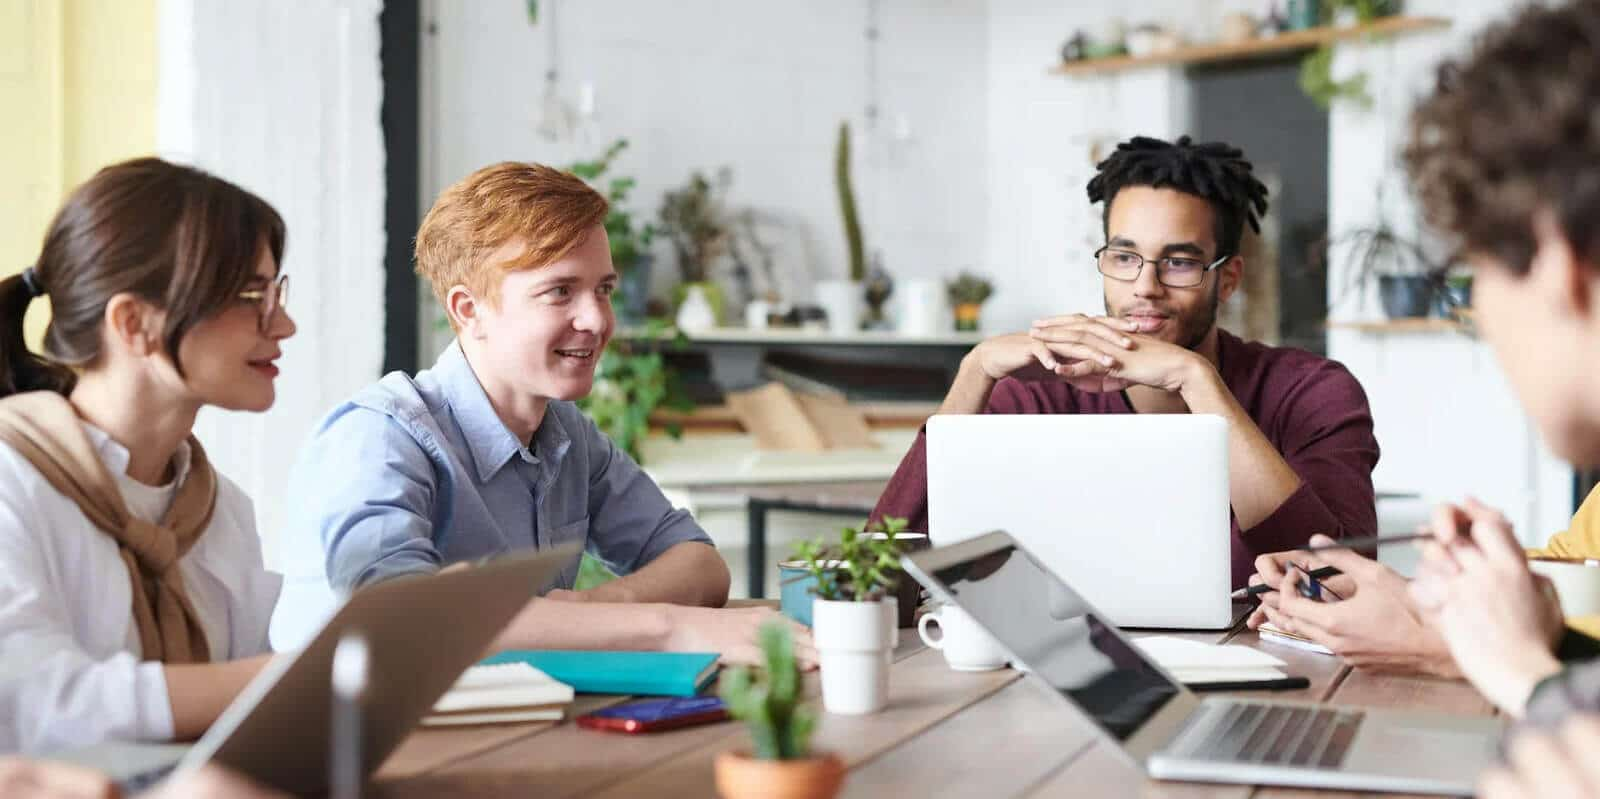 3 ways to promote diversity and inclusion in the workplace